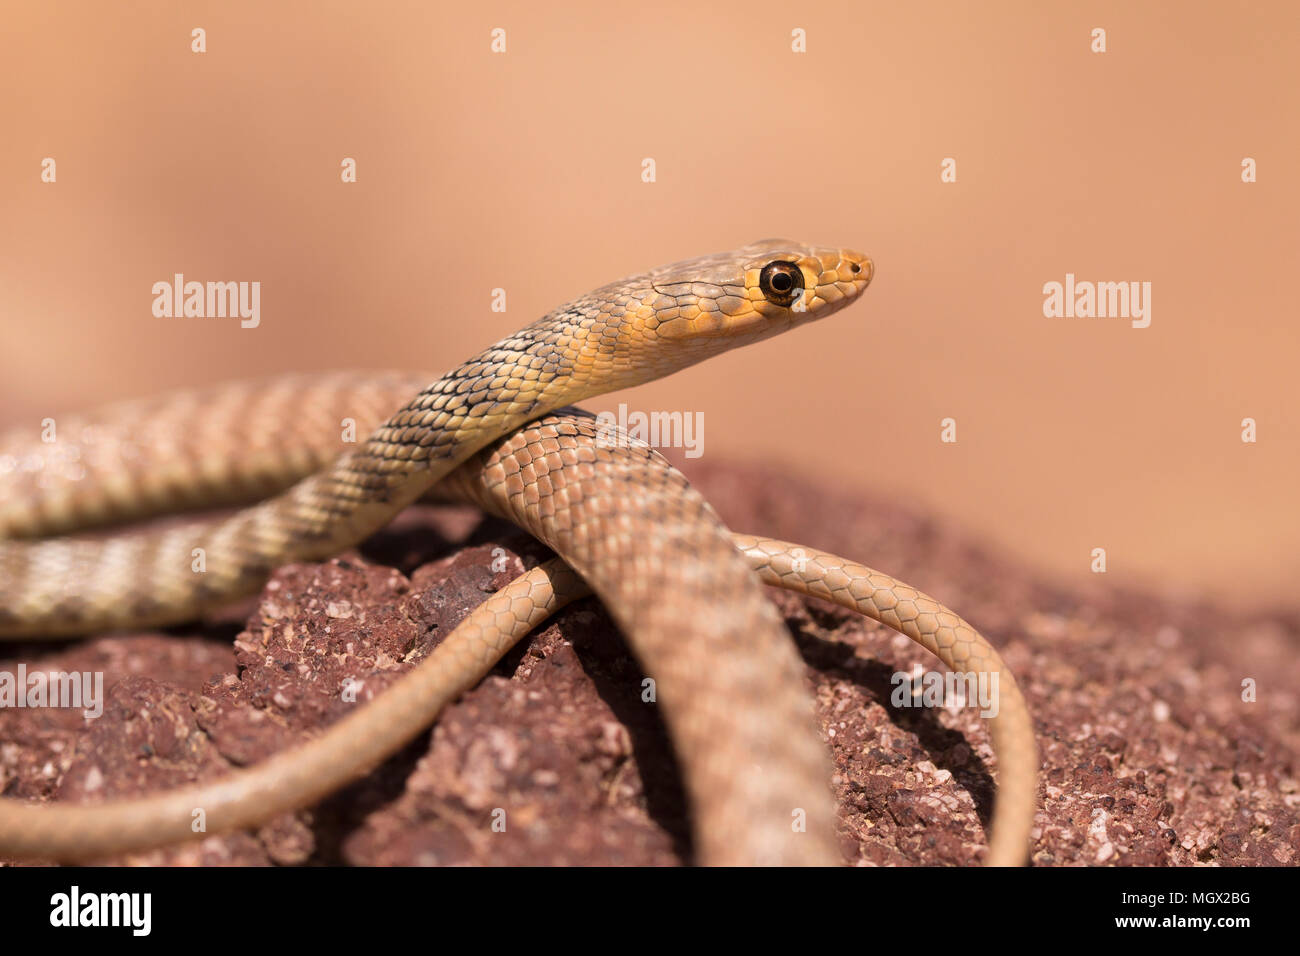 Braid Snake or Jan's Cliff Racer (Platyceps rhodorachis) is a species of snake found in Central Asia and the Middle East. Photographed in Israel in Ma - Stock Image